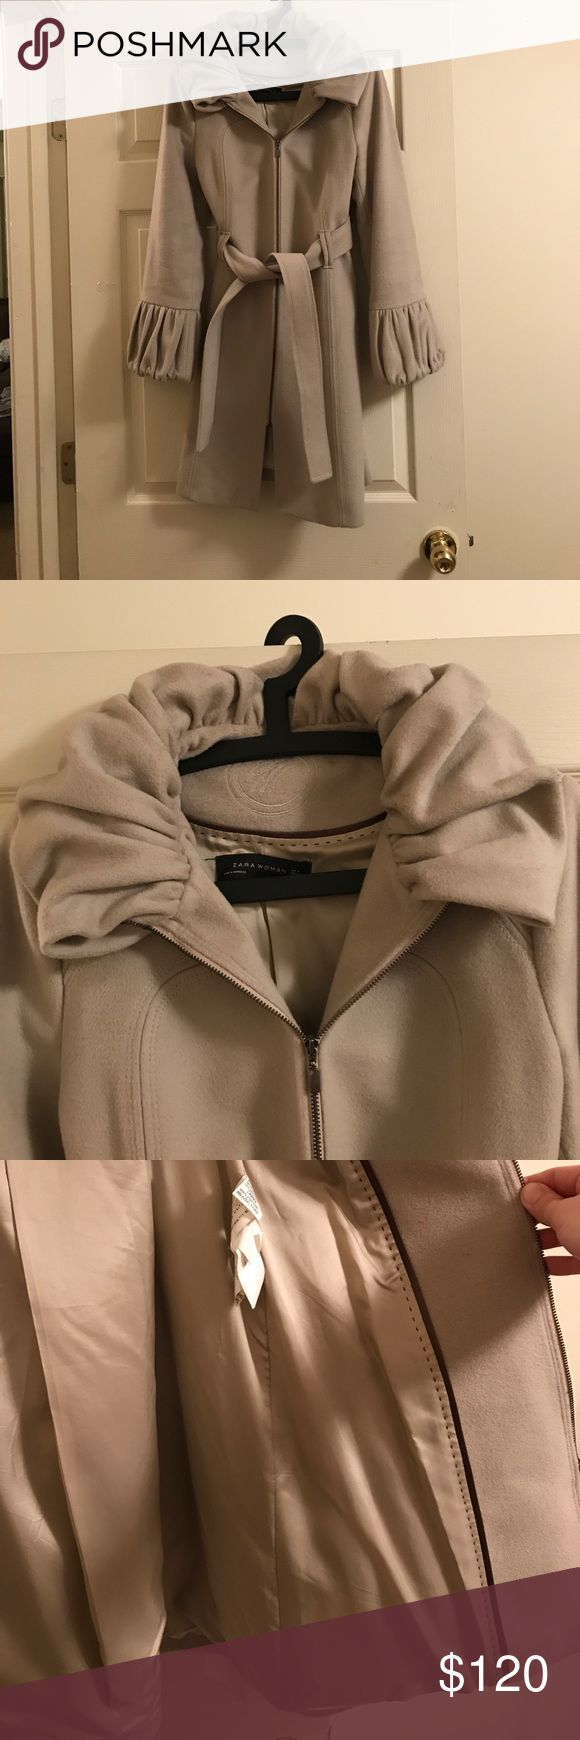 Zara woman wool coat size medium Zara size medium wool coat in amazing condition. Worn only a handful of times. Zara is a European brand and runs on the small side. Euro size medium. Purchased in Europe/Germany. Very original design. 67% wool, 15% angora, 18% polyamide Mango Jackets & Coats Trench Coats